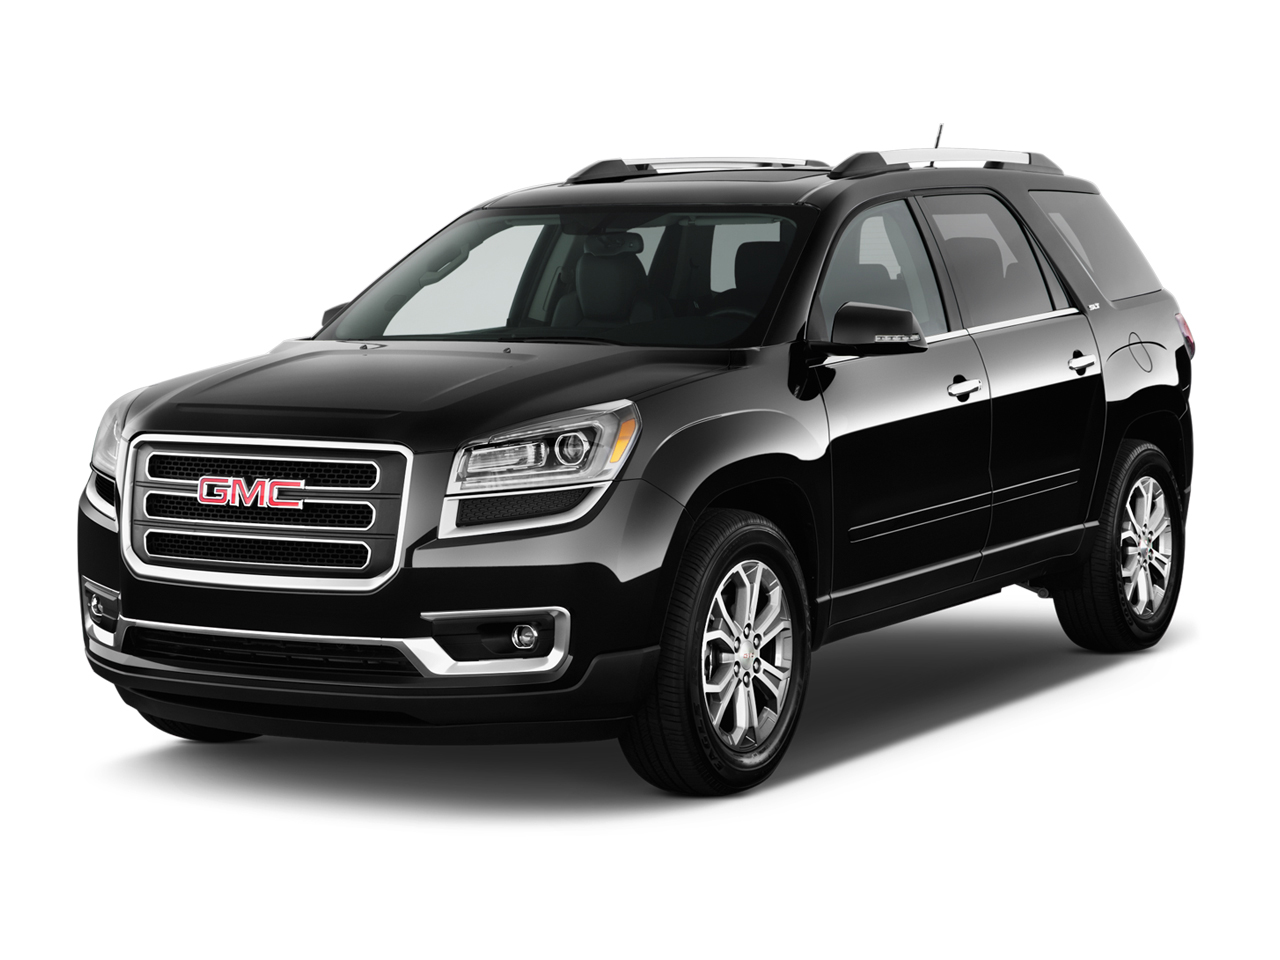 2016 Gmc Acadia Safety Review And Crash Test Ratings The